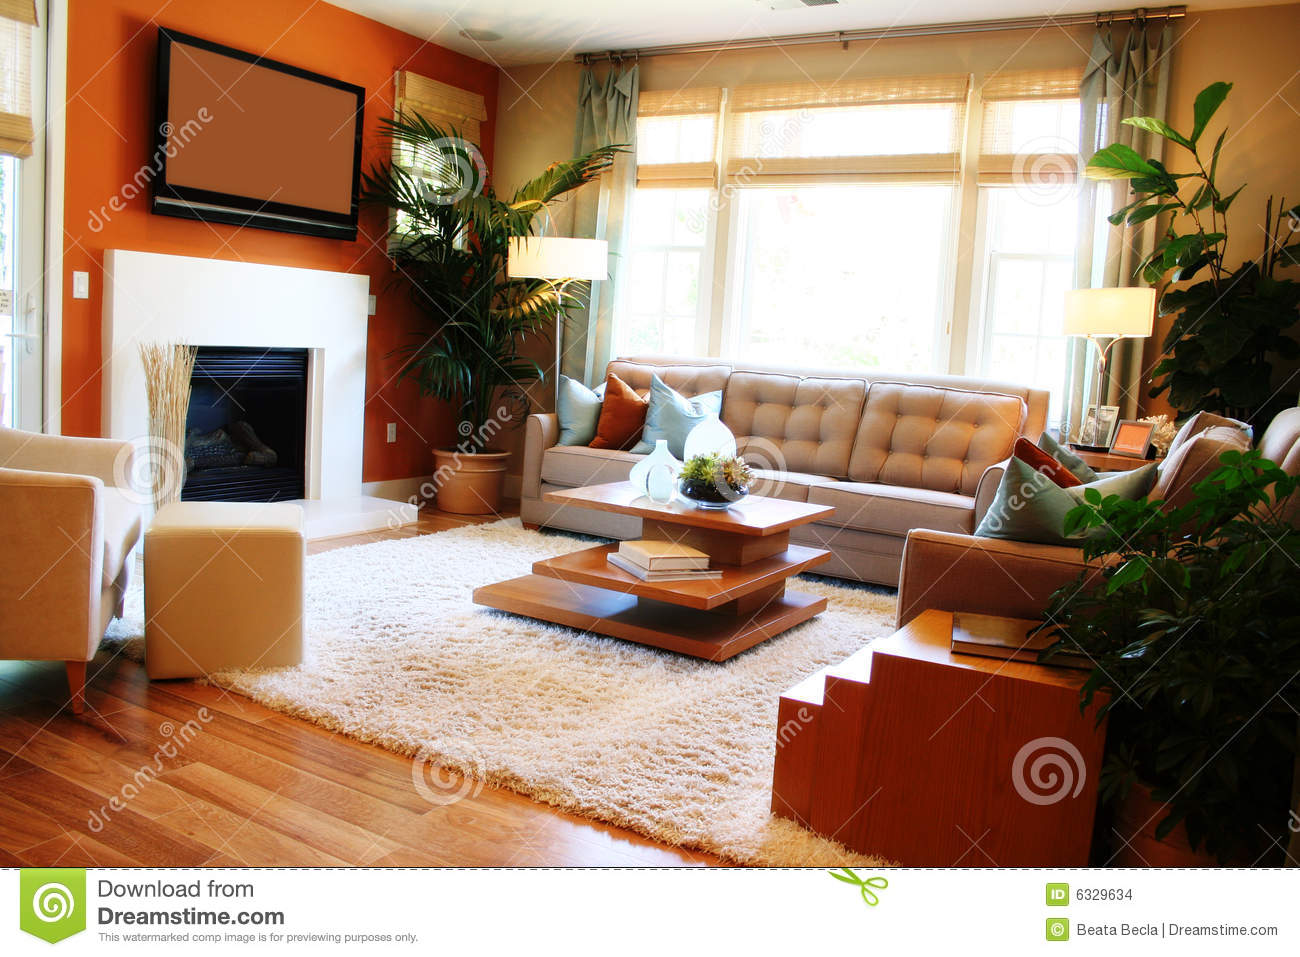 cozy living room. affordable with. affordable living room deco, Living room